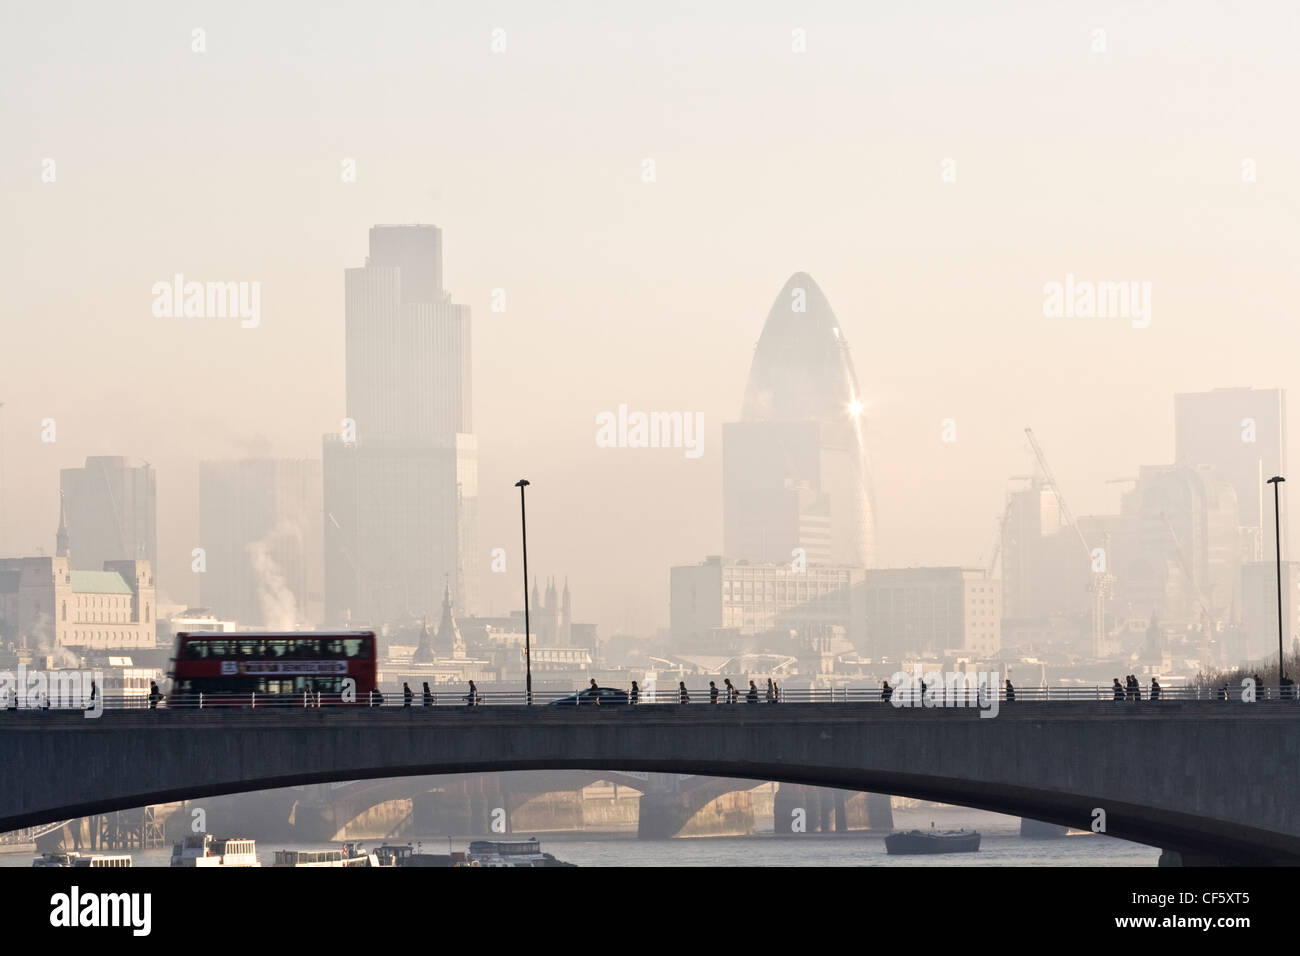 Rush hour on a misty morning. - Stock Image